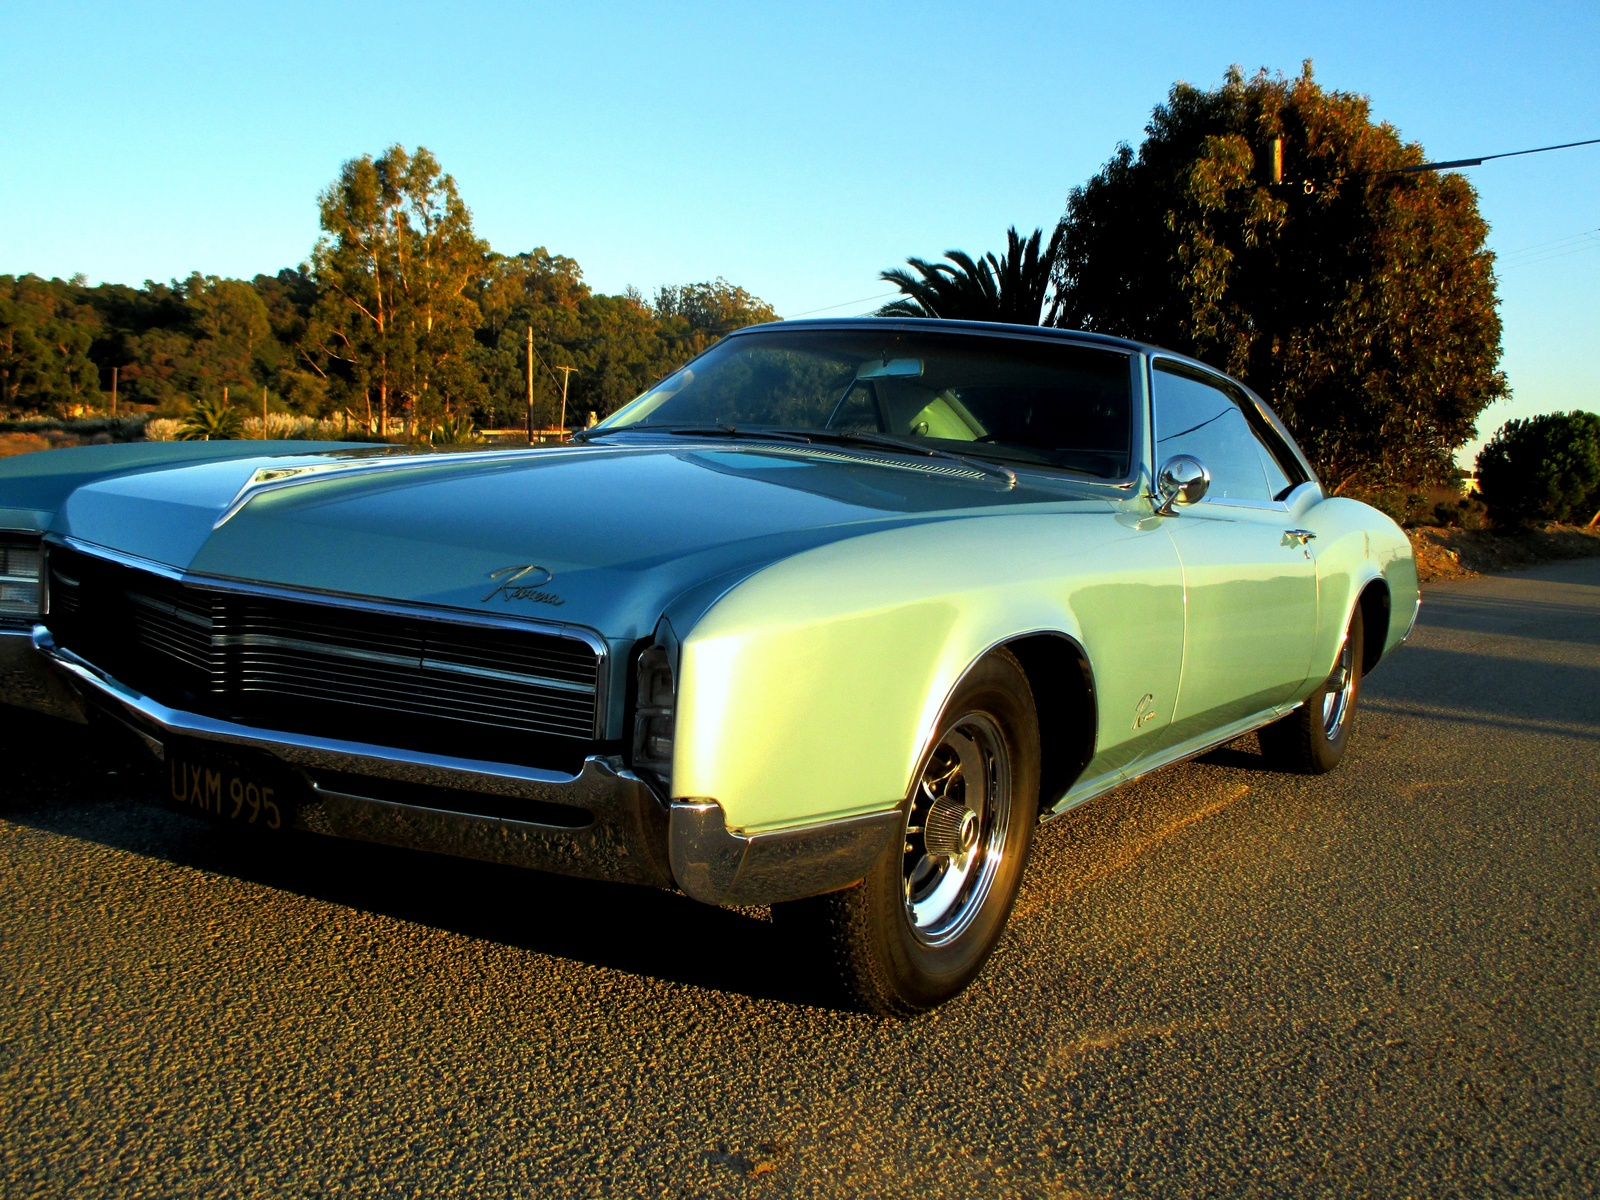 S le moreover Wiring Diagrams Of Buick Lesabre Invicta Wildcat Electra Part together with Wiring Diagram For Buick Riviera Part together with Mb Wiring in addition Buick Riviera Pic. on 1963 buick special ignition wiring diagram